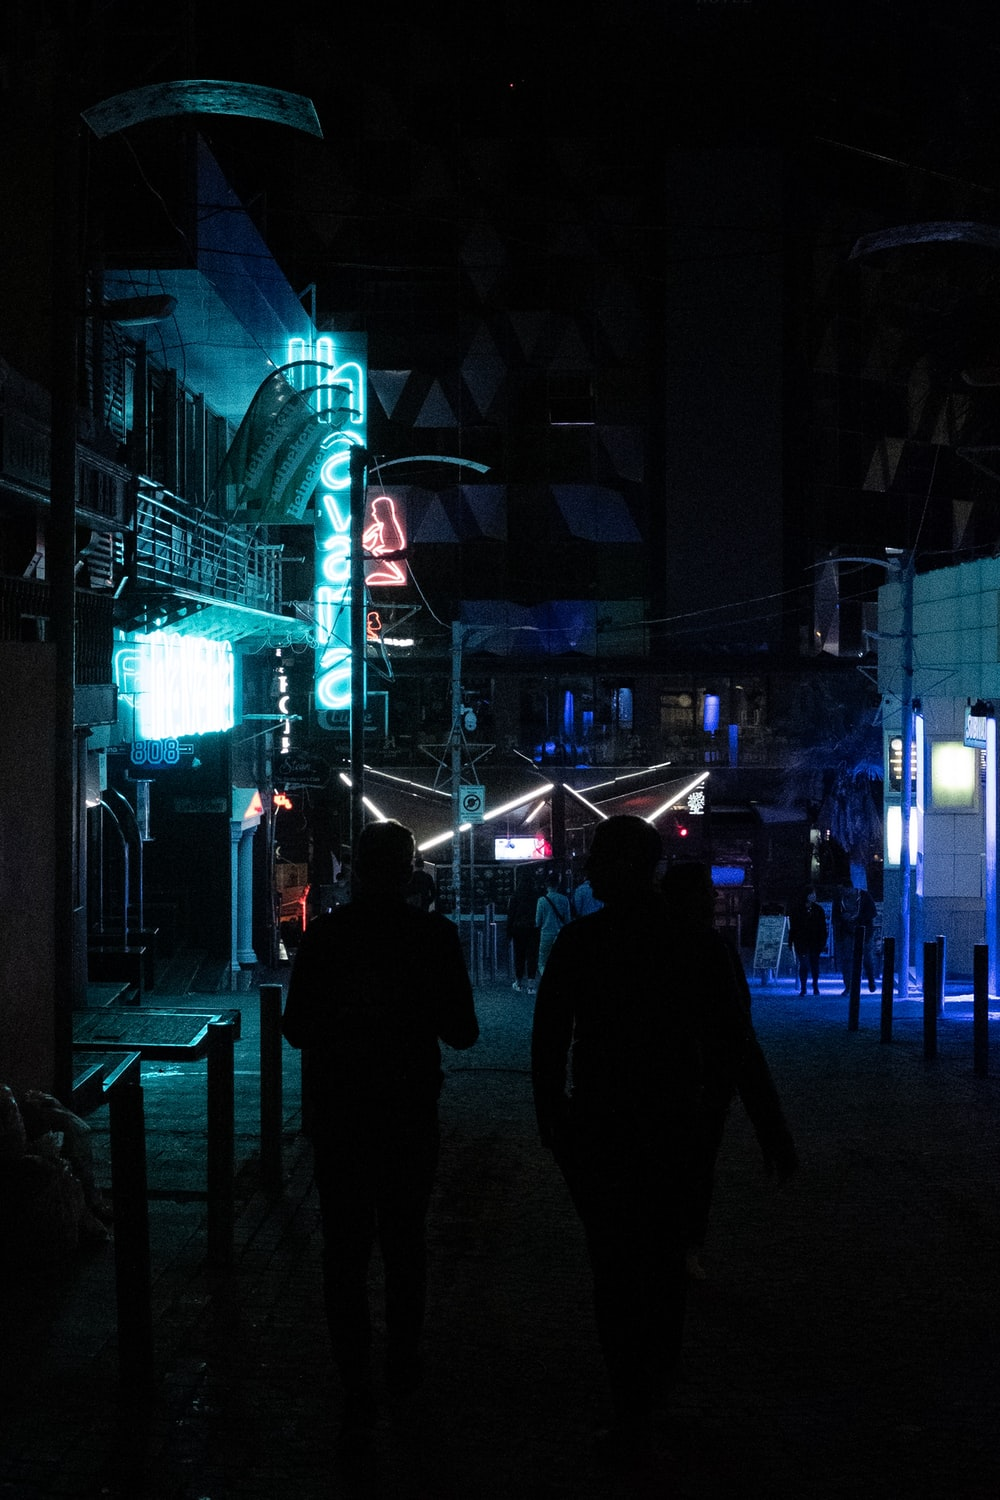 turned-on neon sign at night